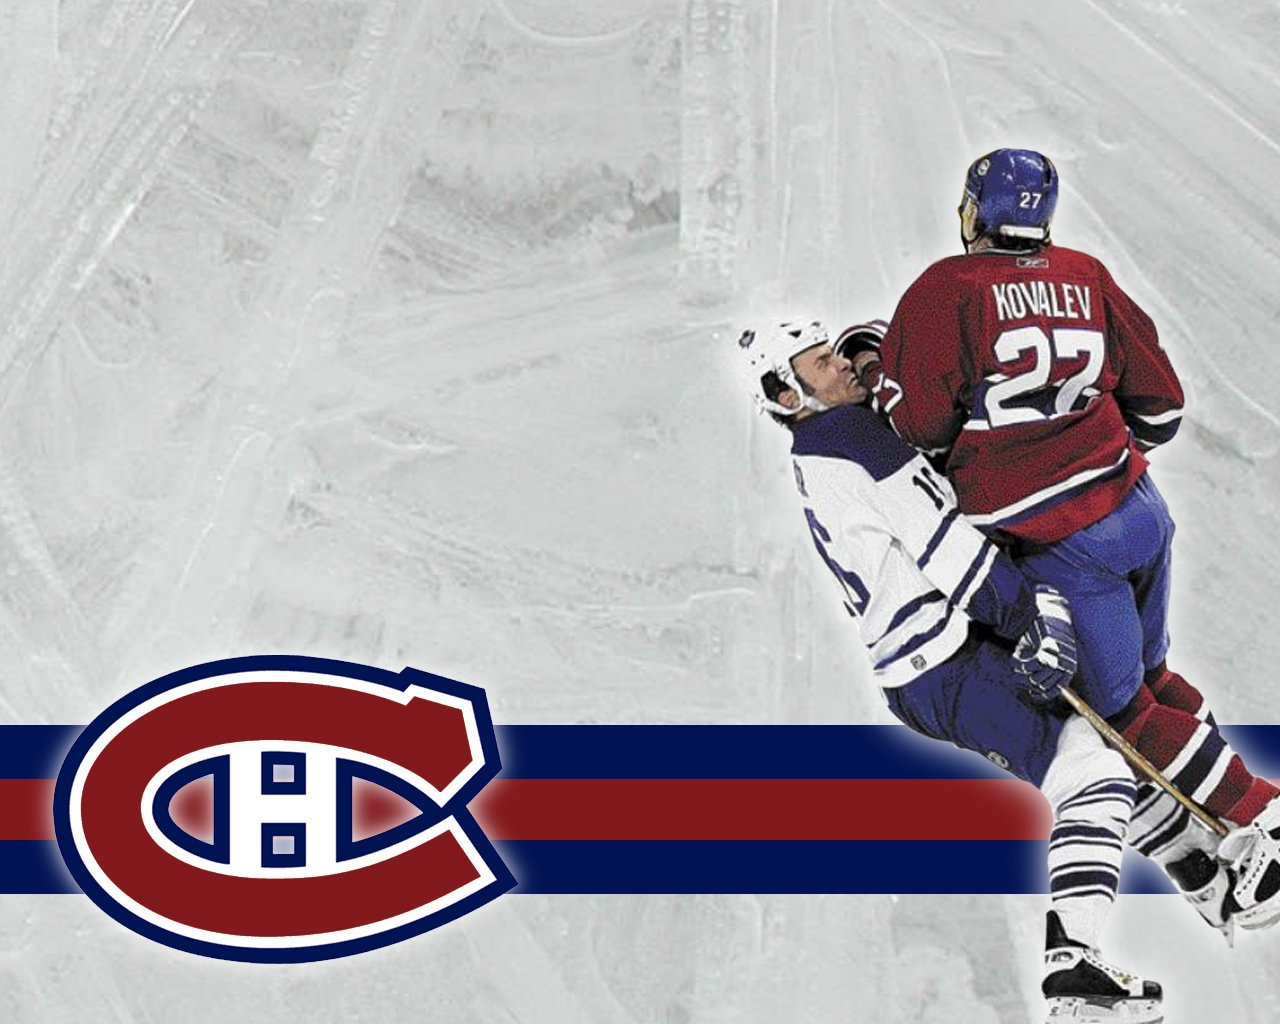 Montreal Canadiens HD wallpaper Montreal Canadiens wallpapers 1280x1024